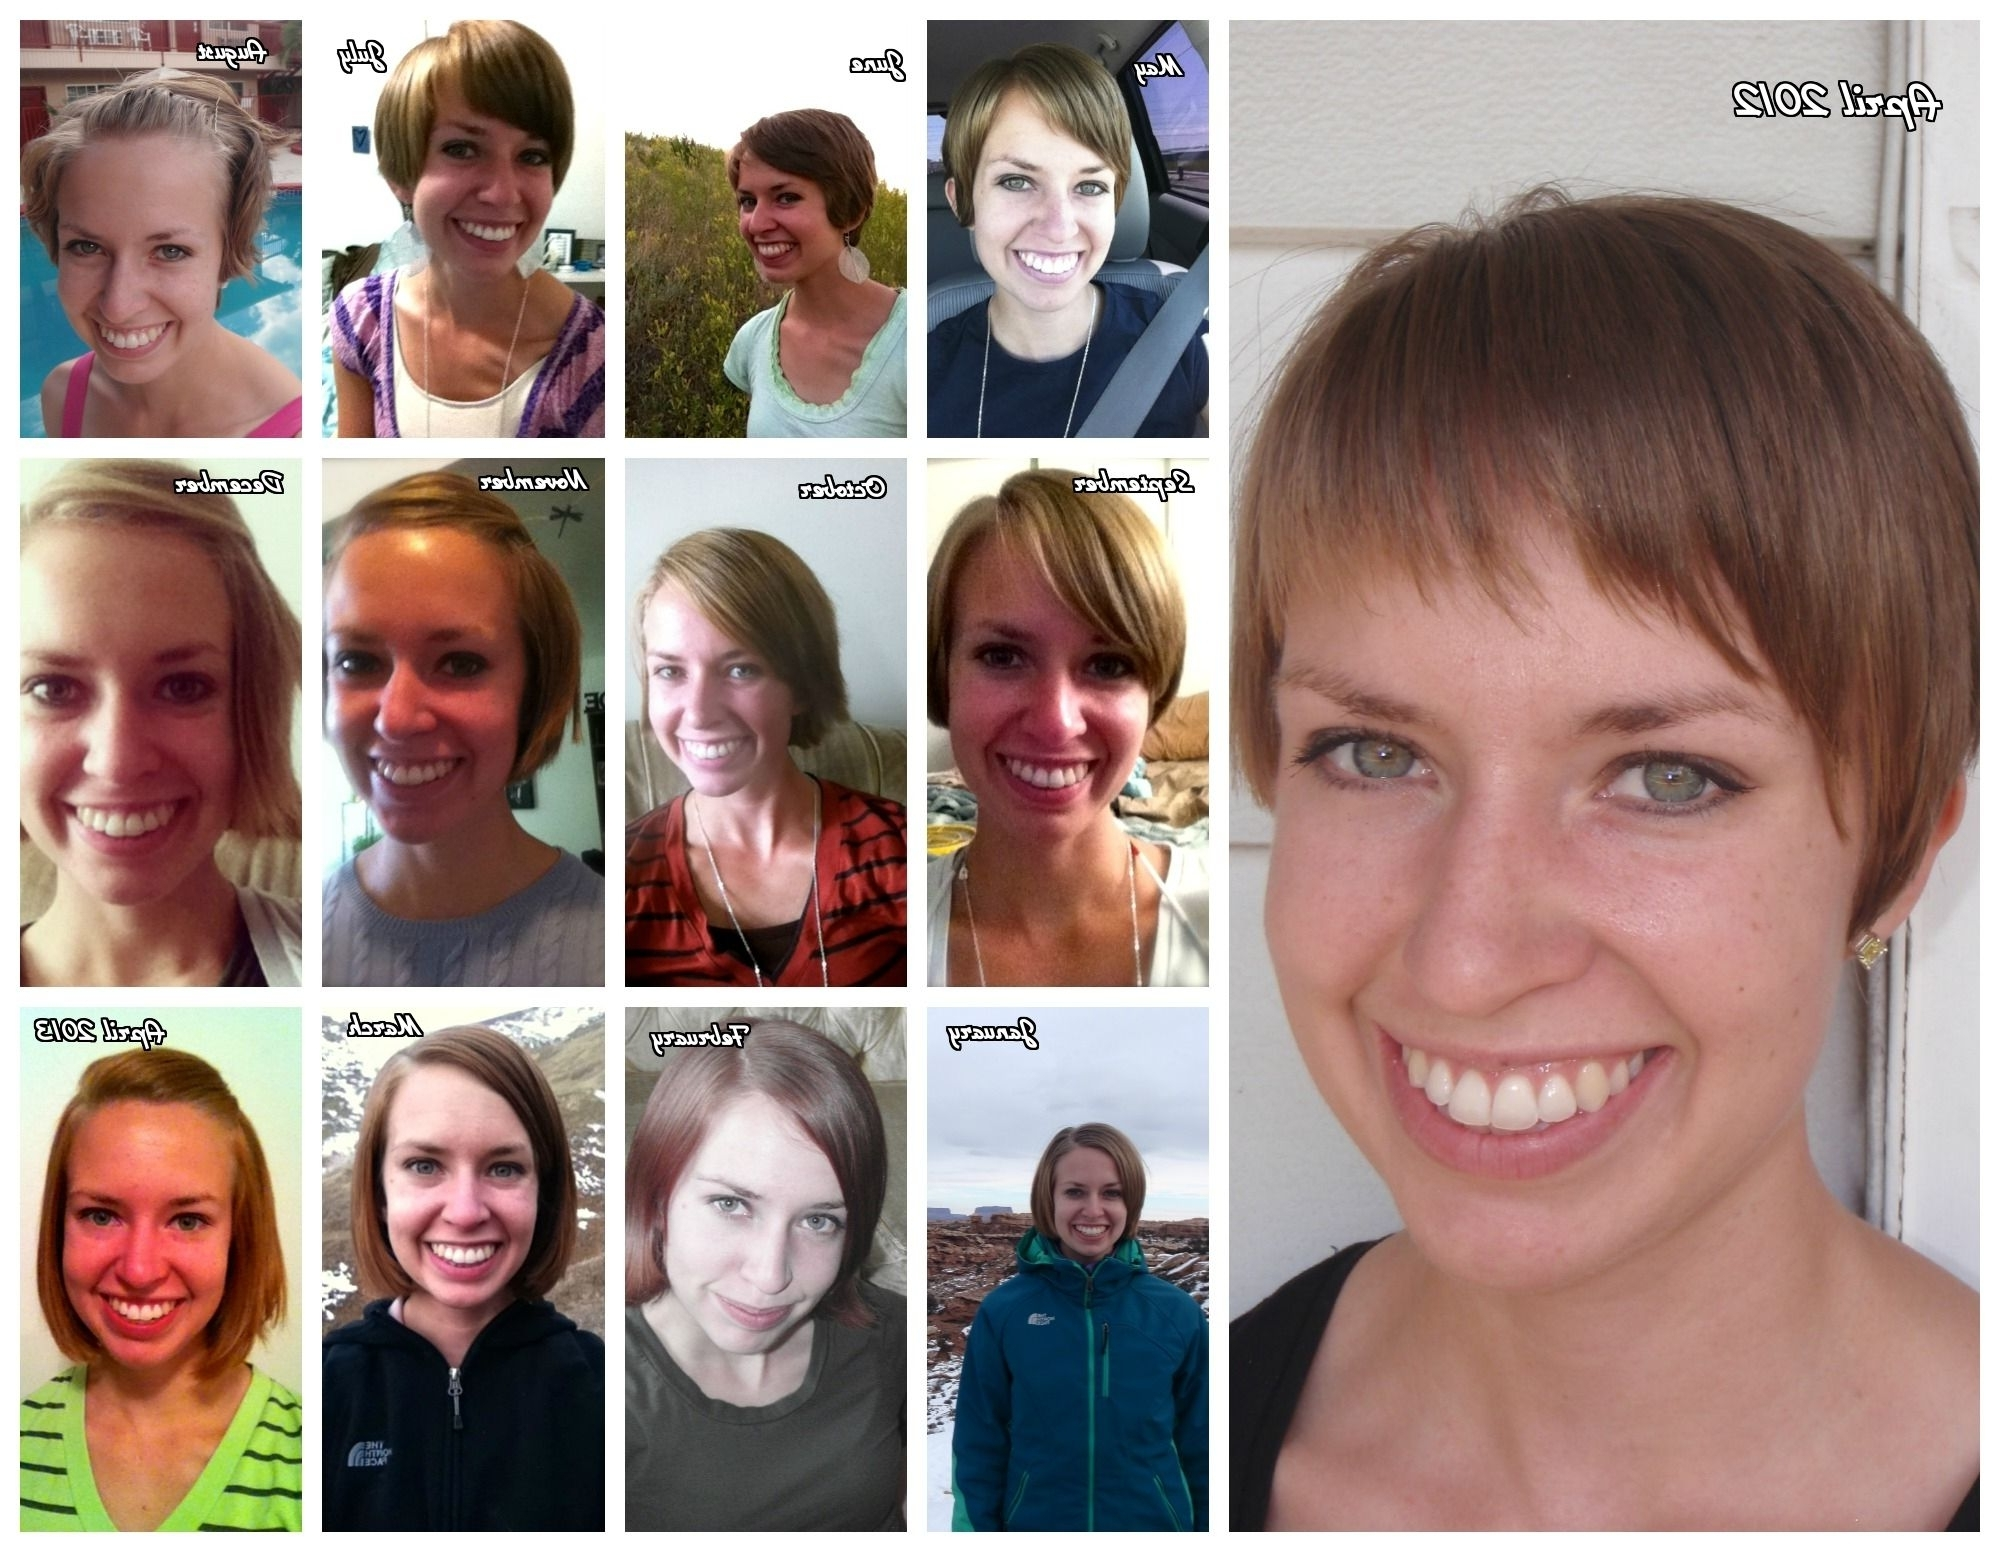 Growing Out Pixie Haircut Timeline | Hairtastic | Pinterest | Pixie Within Most Recent Growing Out Pixie Haircuts For Curly Hair (View 13 of 15)